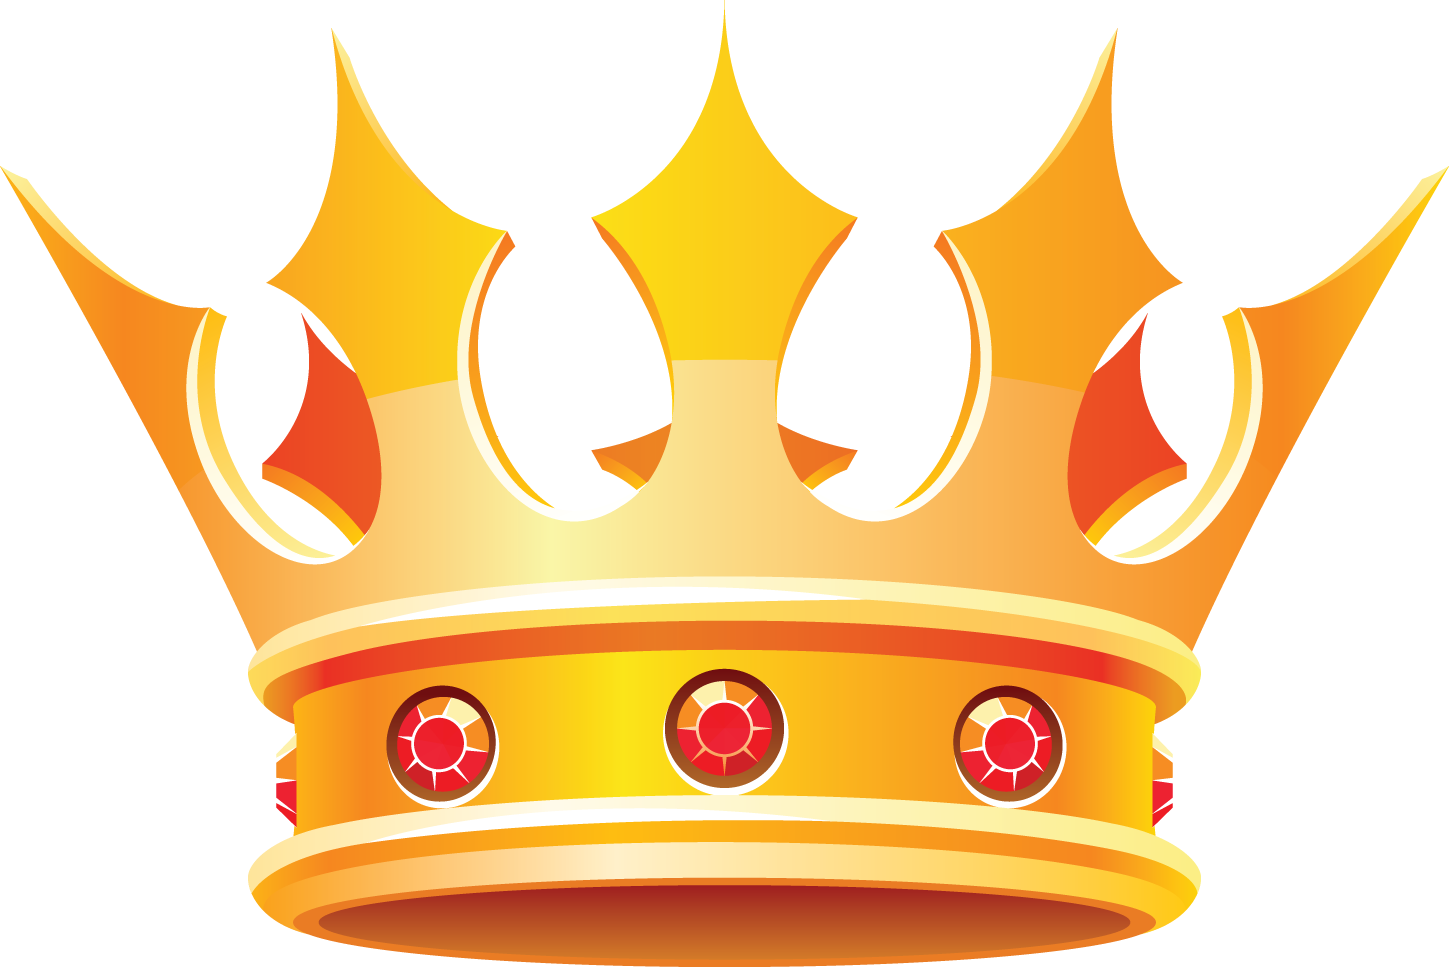 transparent download Free queen cliparts download. Crowns clipart big crown